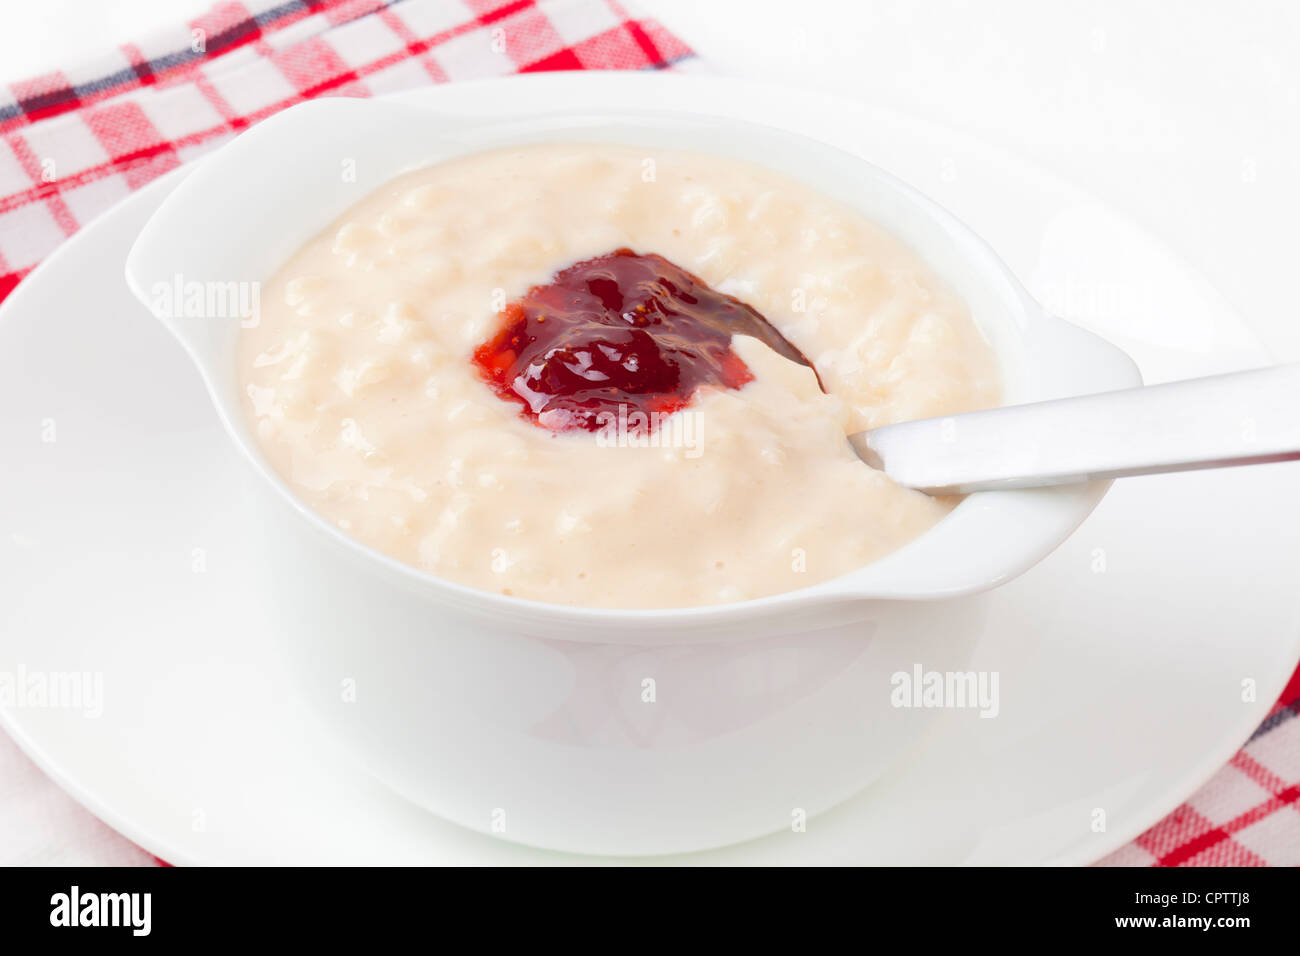 A bowl of rice pudding topped with strawberry jam, spoon digging in. - Stock Image